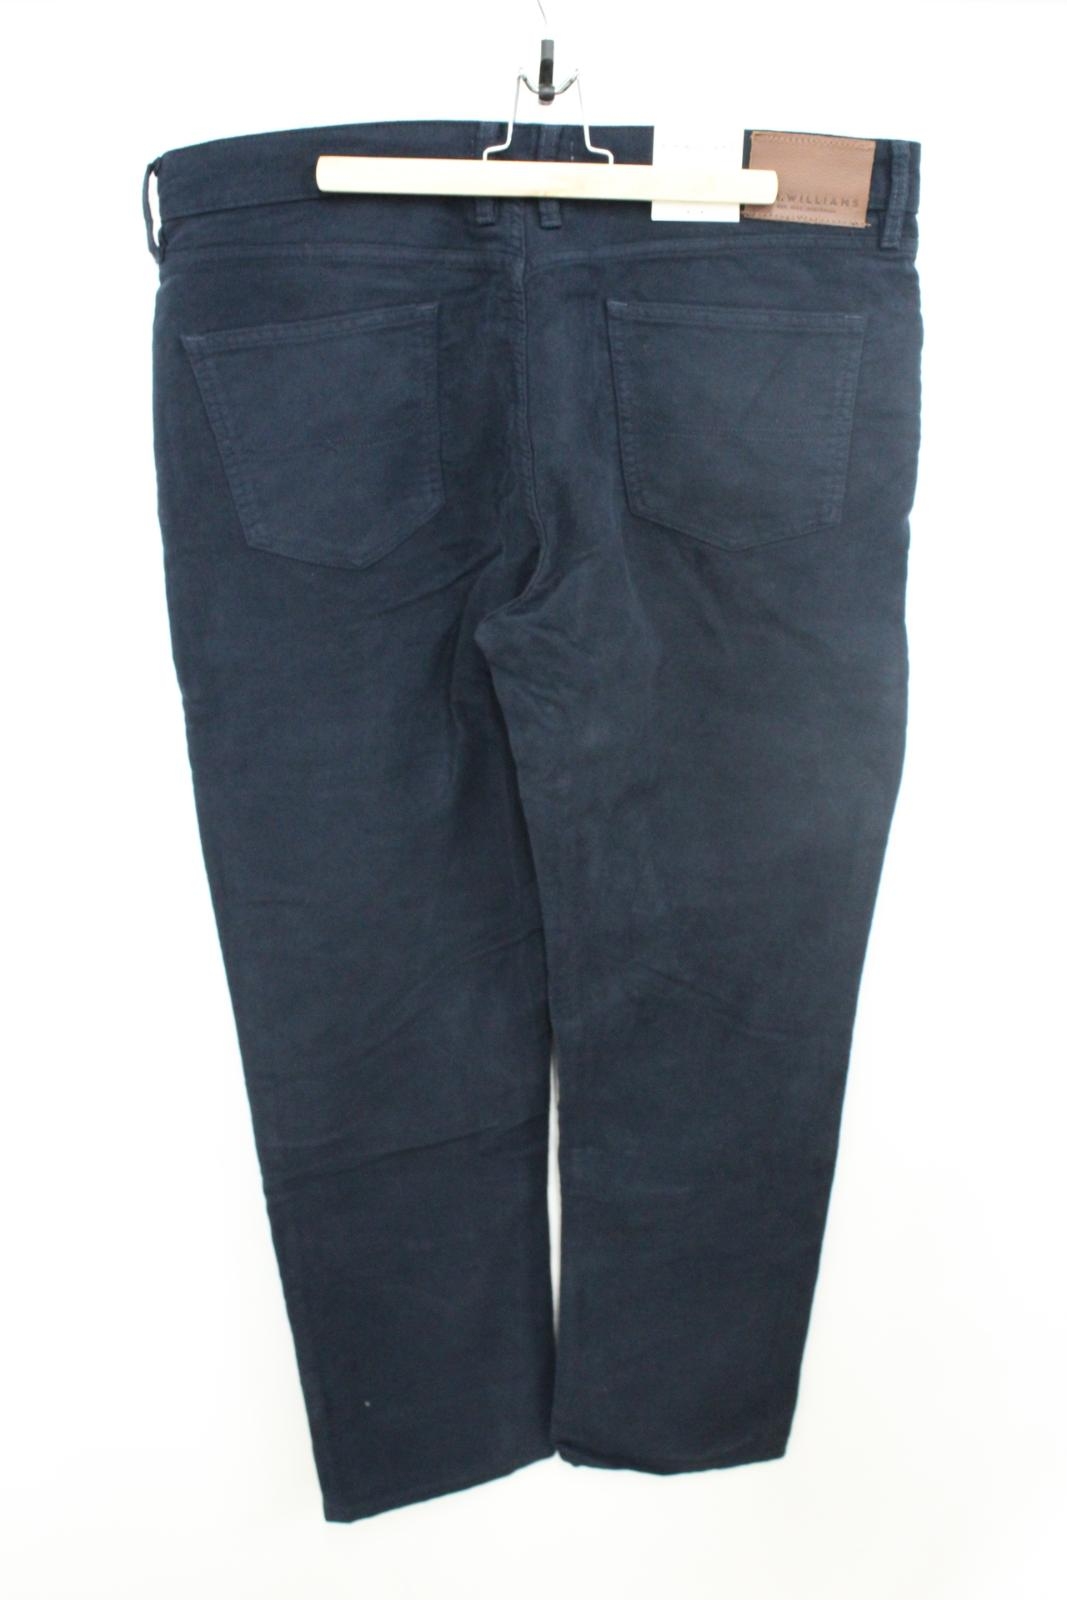 Blue Leg Williams 40in Tapered m Mens Navy Jeans Bnwt Regular Low Ramco 30l R 1qCSyf